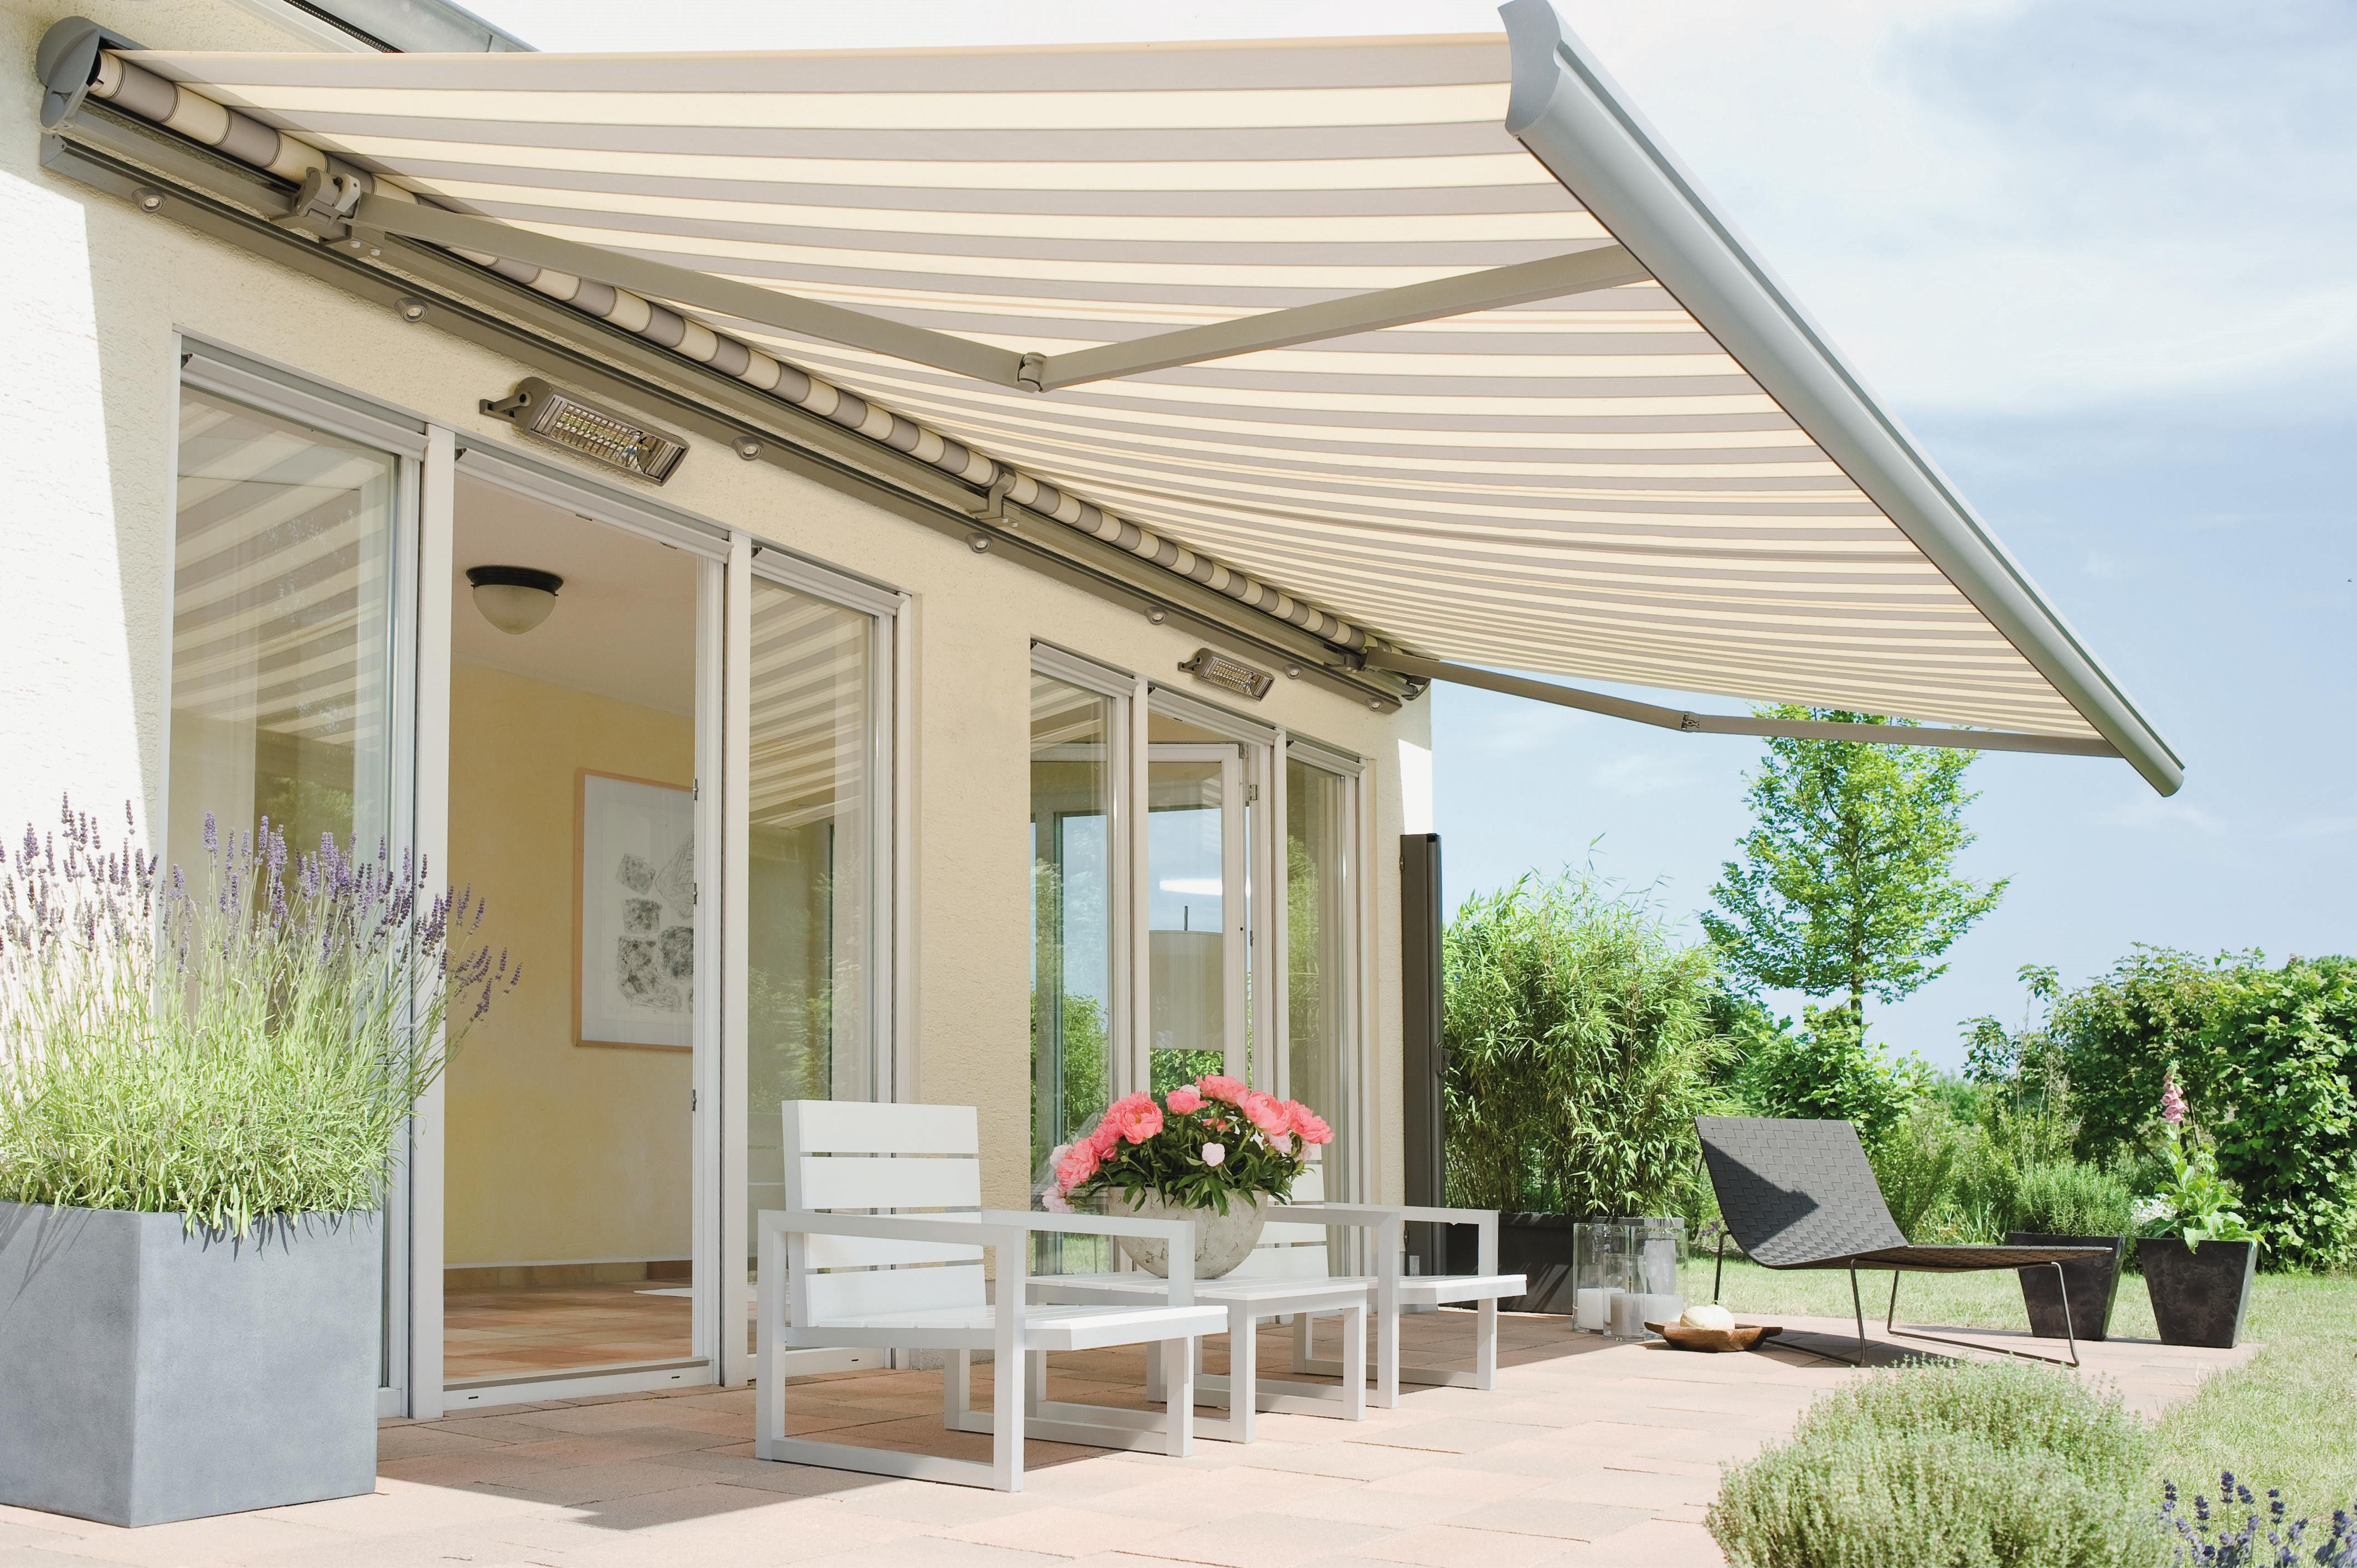 installation new links and awnings awning retractable comments customer photos images product installing custom application nj availability pictures bracket mounting ideas